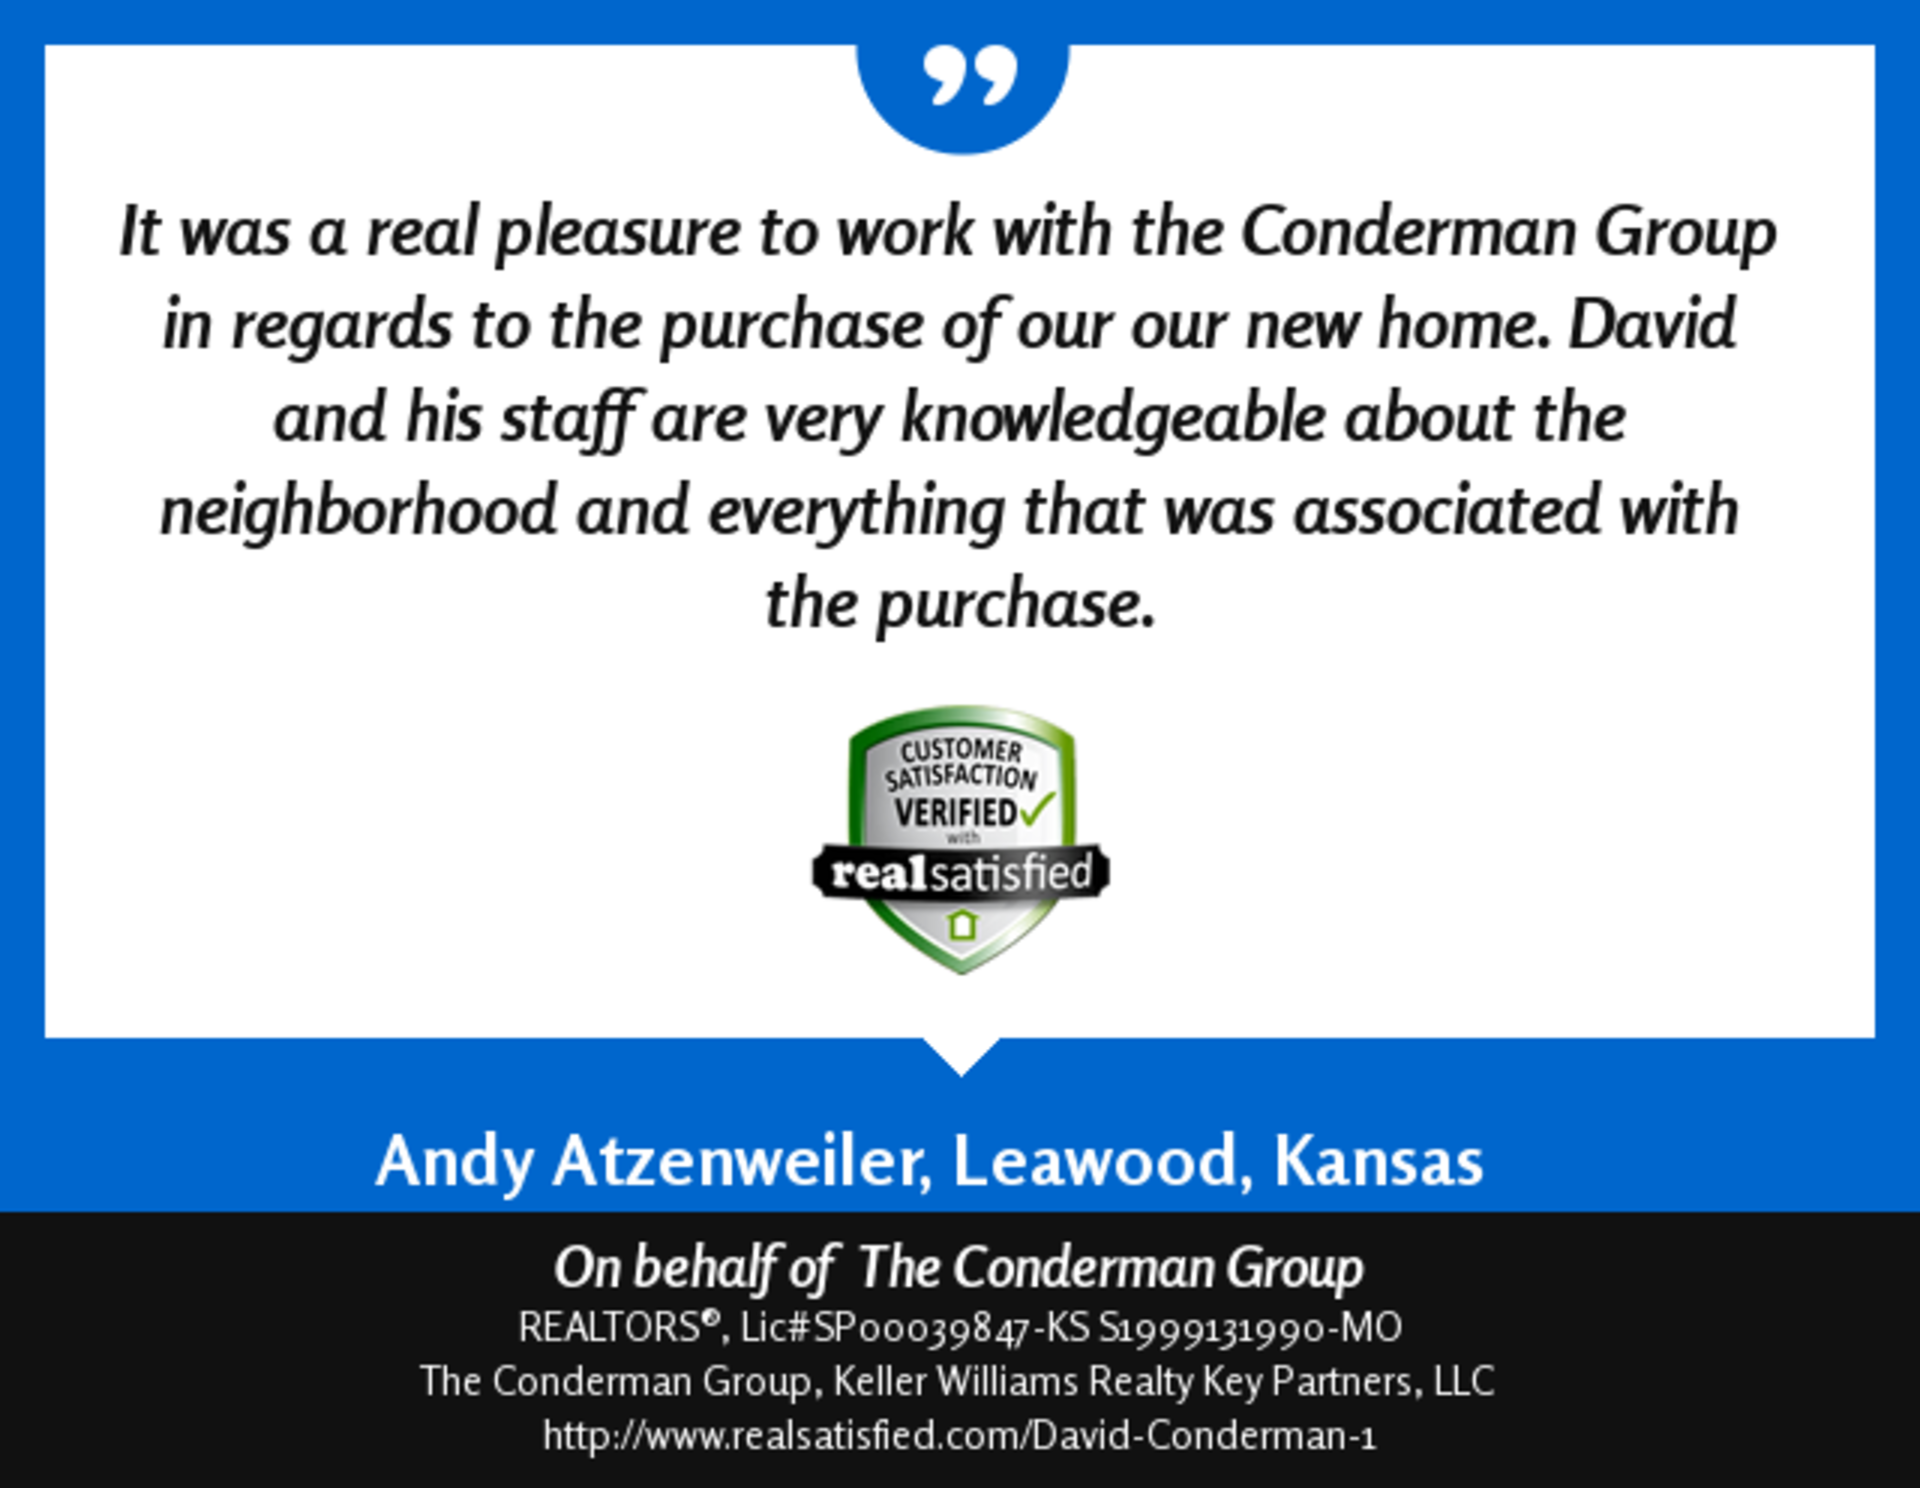 David and his staff are very knowledgeable …